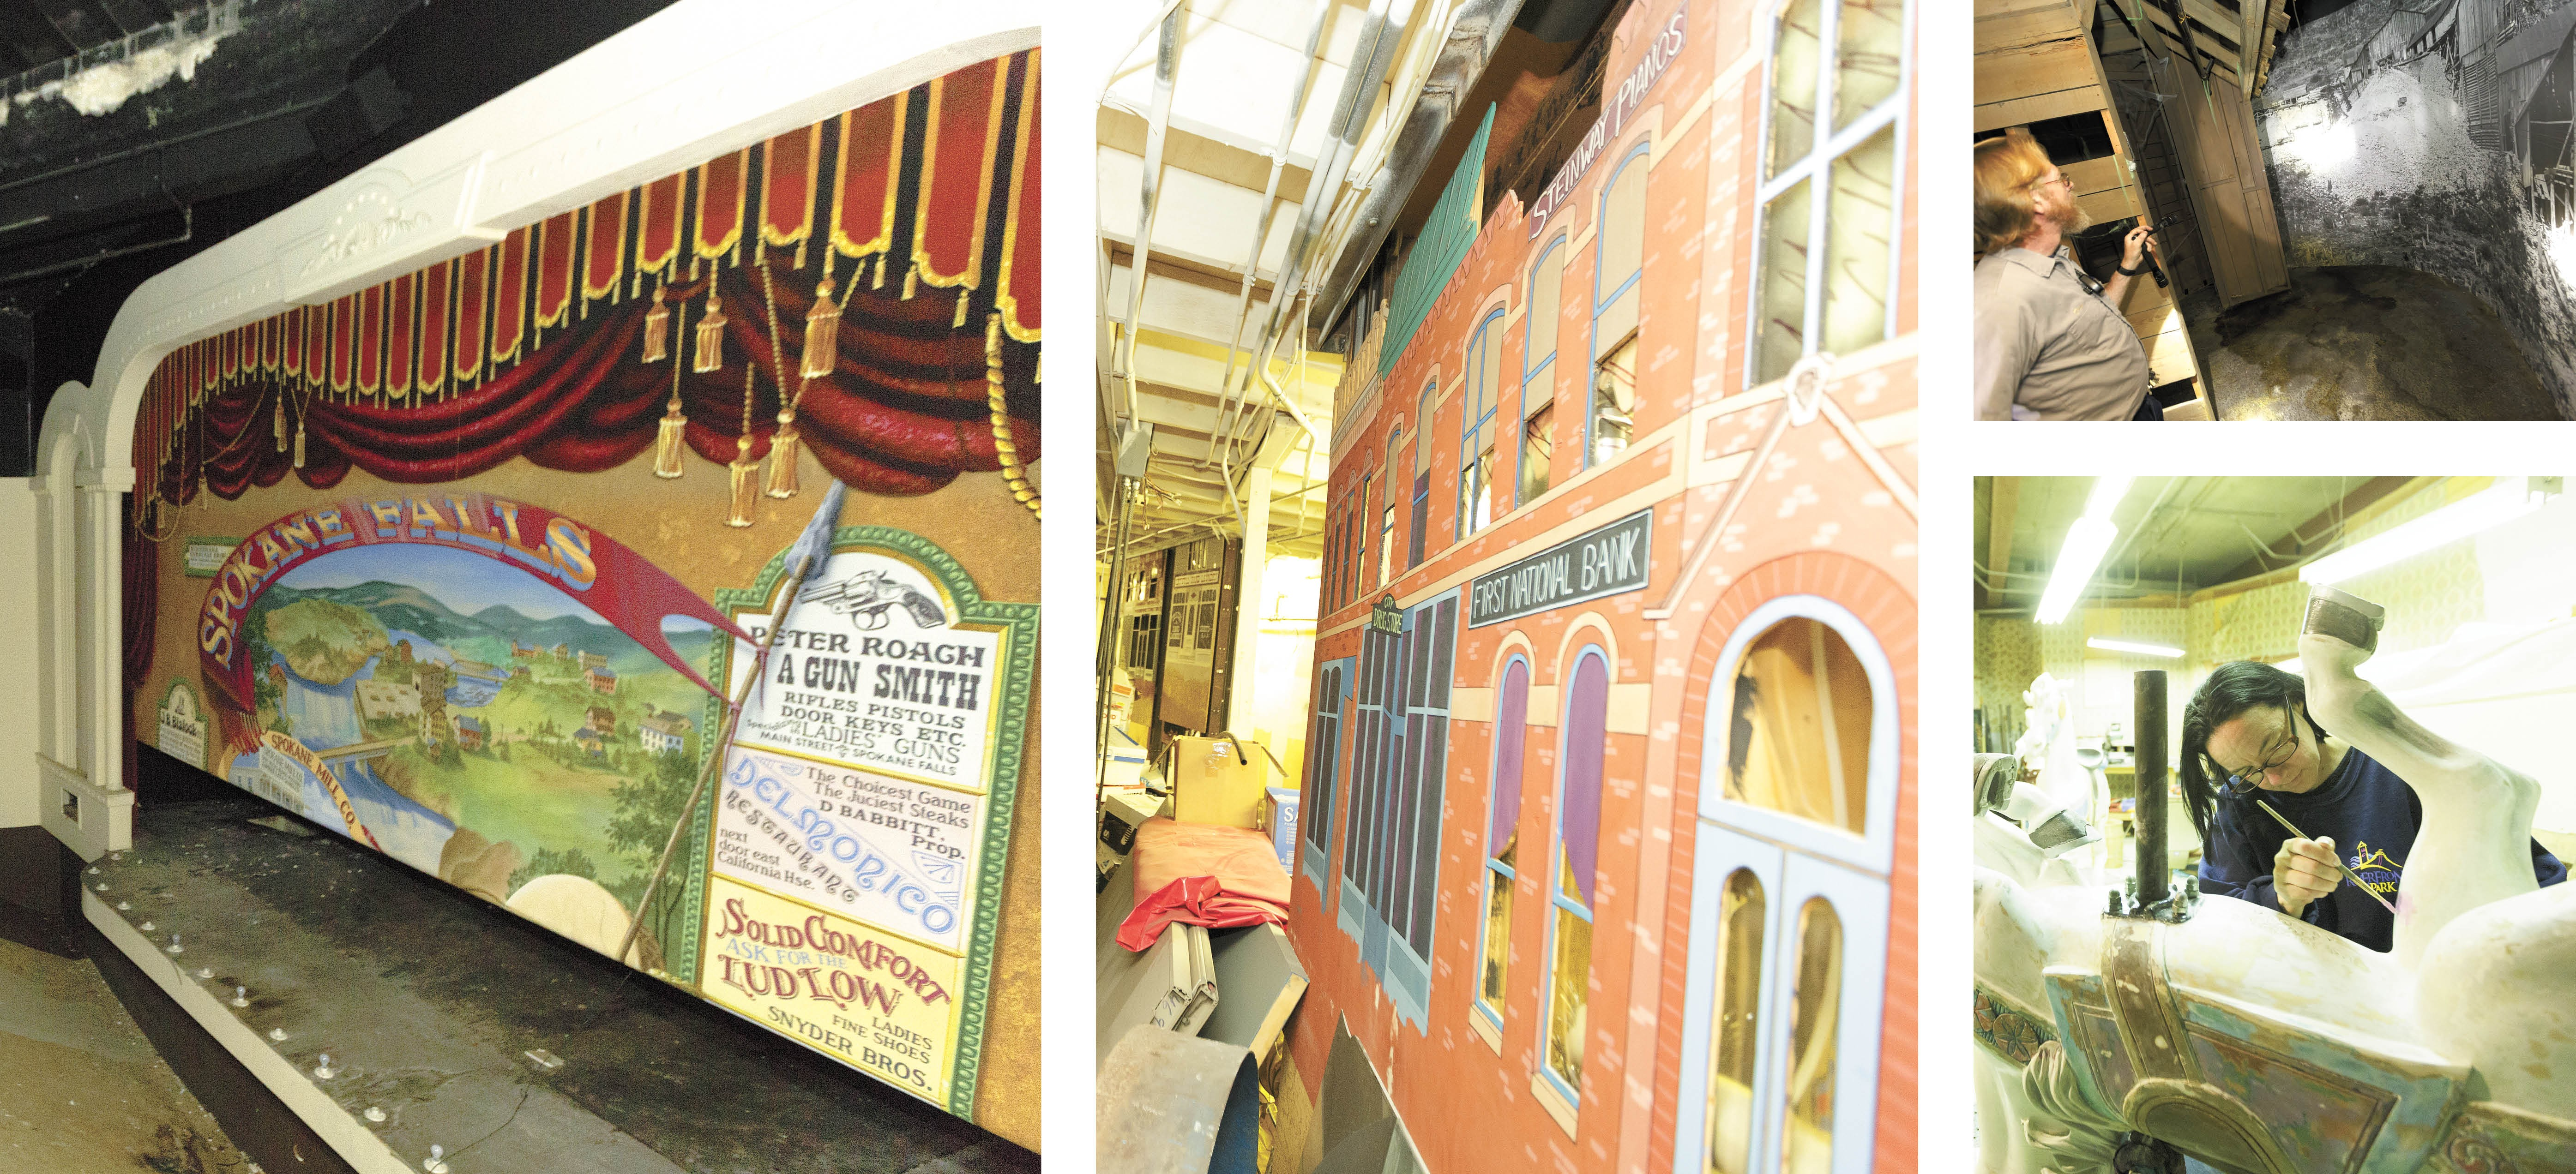 The Spokane Story exhibit included a pioneer-themed stage and a recreation of Spokane at the time of the Great Fire. TOP RIGHT: David Randolph, Riverfront Park's facilities foreman. BOTTOM RIGHT: Today the space is occupied by preservationists like Wendy Hayes, who keep the Looff Carrousel spinning. - YOUNG KWAK